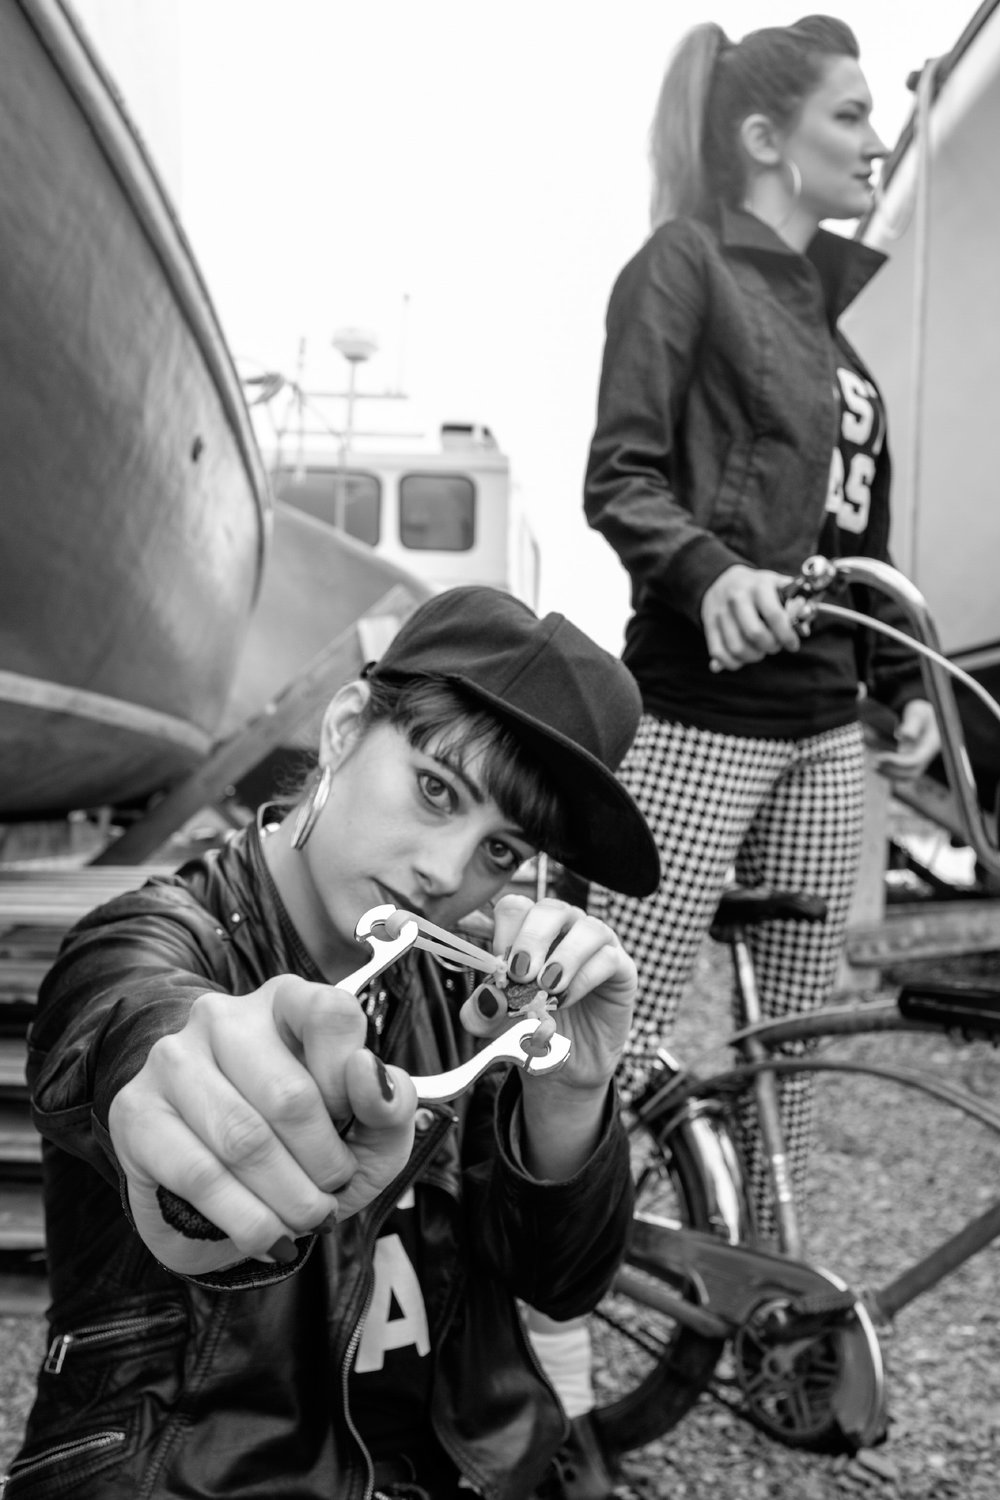 may13 2016-The Girl From Away-EAST COAST girl gang-Fuji X100T-B&W-Sambro NS-photo by Aaron McKenzie Fraser-www.amfraser.com-web-AMCF3302.jpg